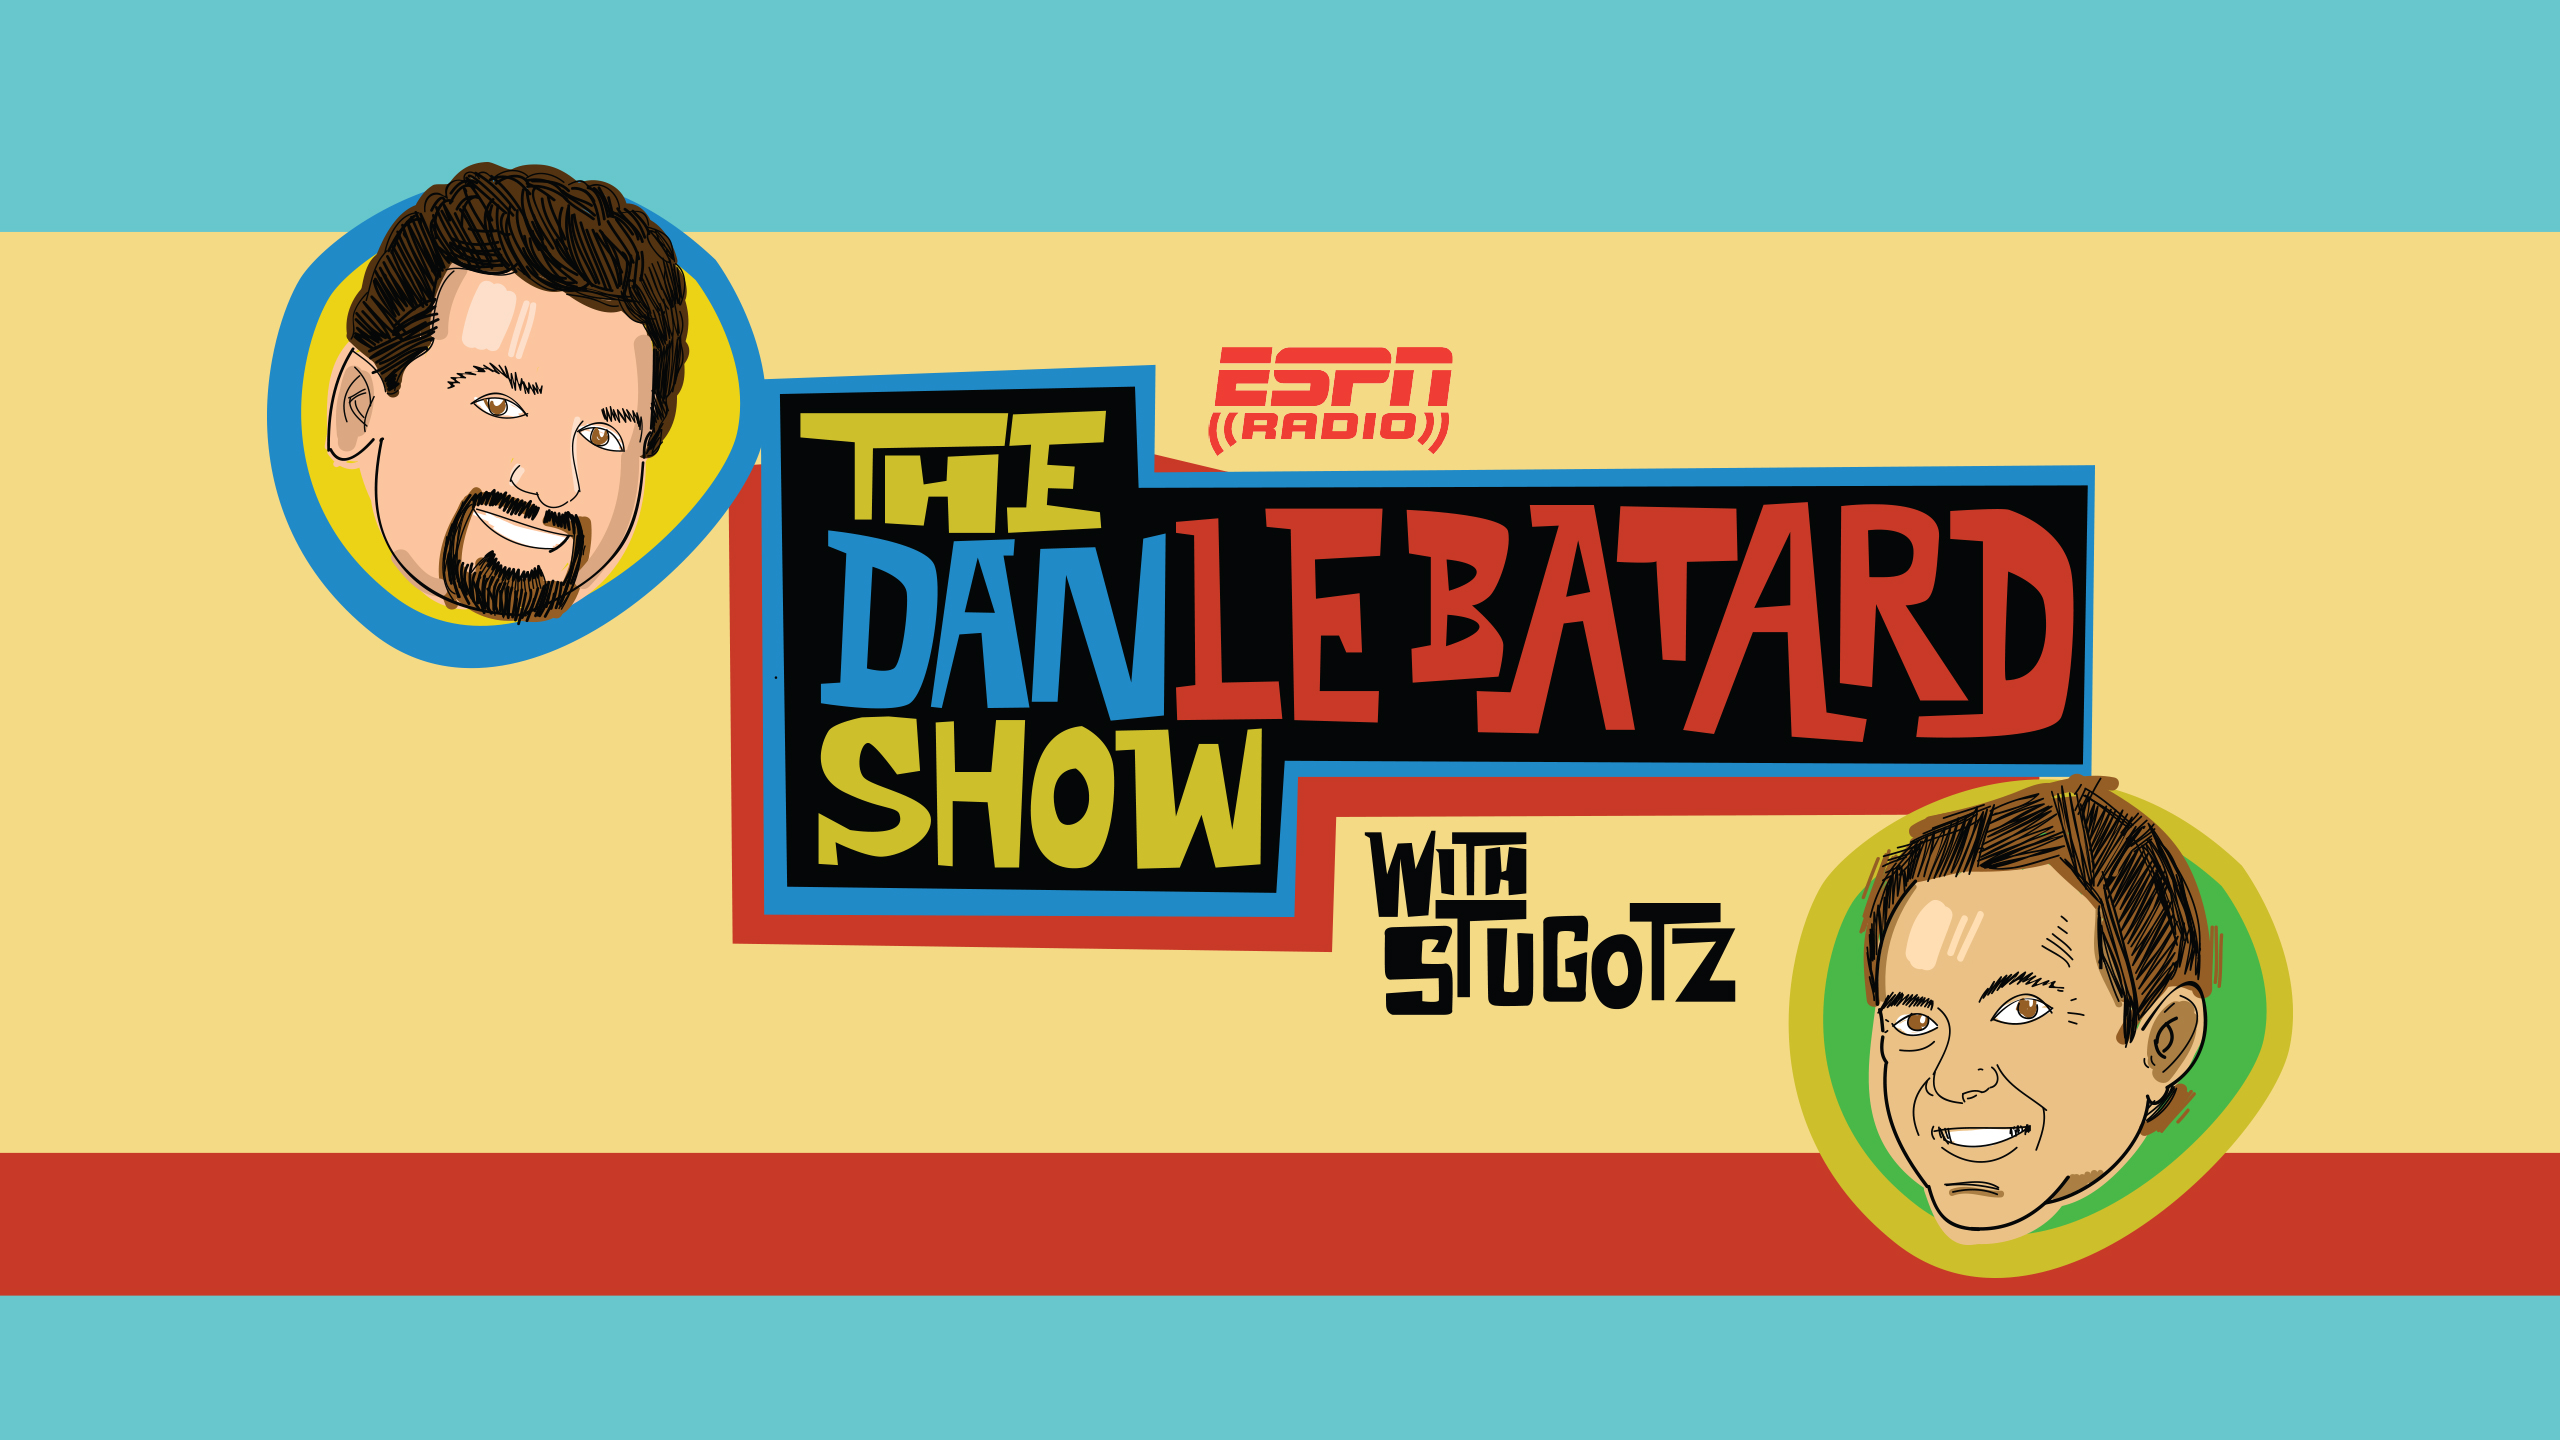 Tue, 12/11 - The Dan Le Batard Show with Stugotz Presented by Progressive